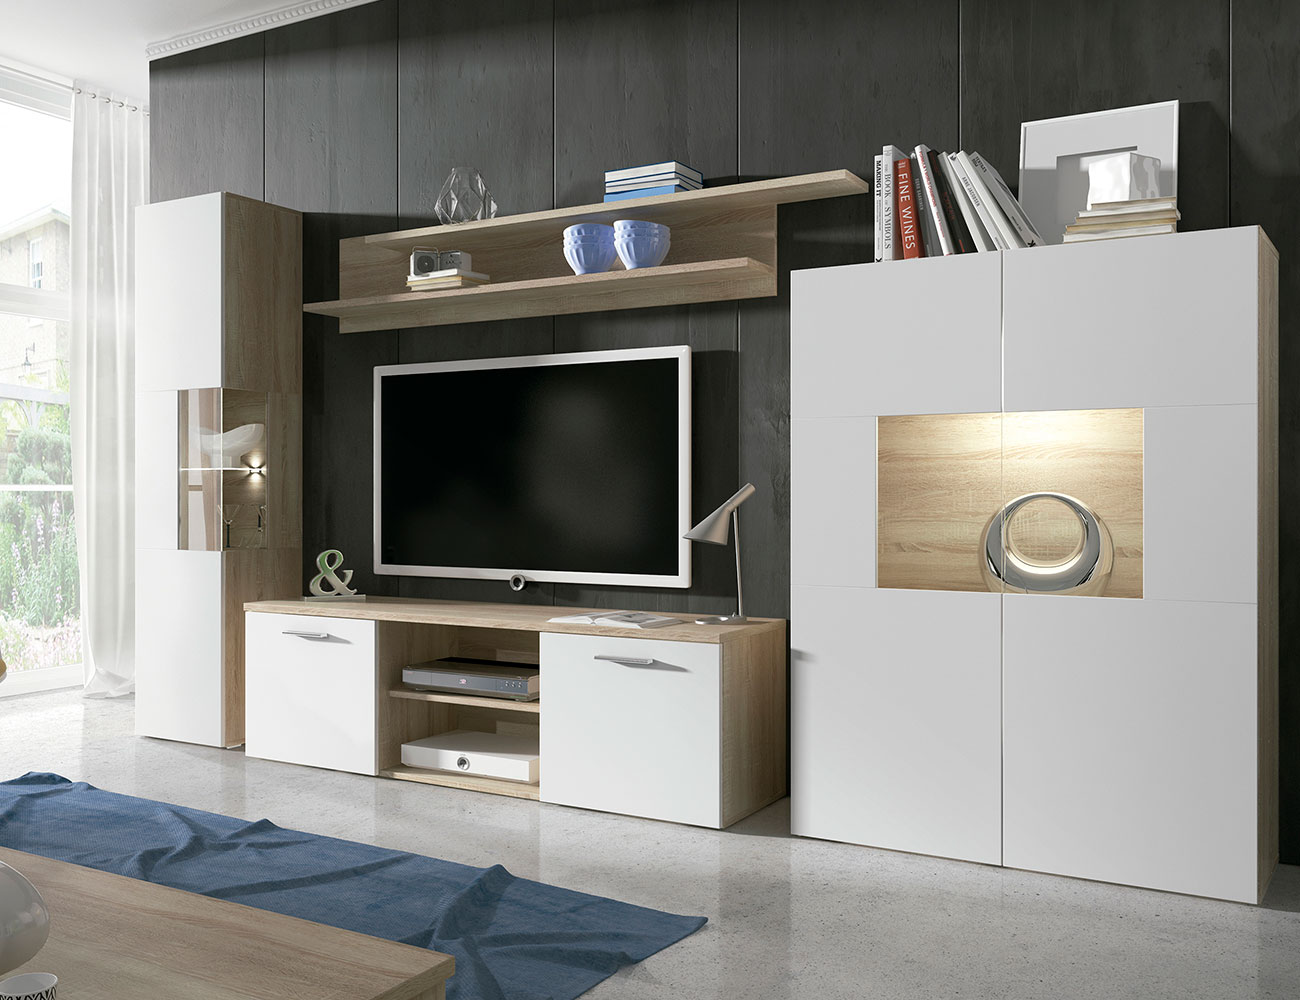 Mueble de sal n moderno con luces leds en cambrian con for Mueble salon moderno blanco